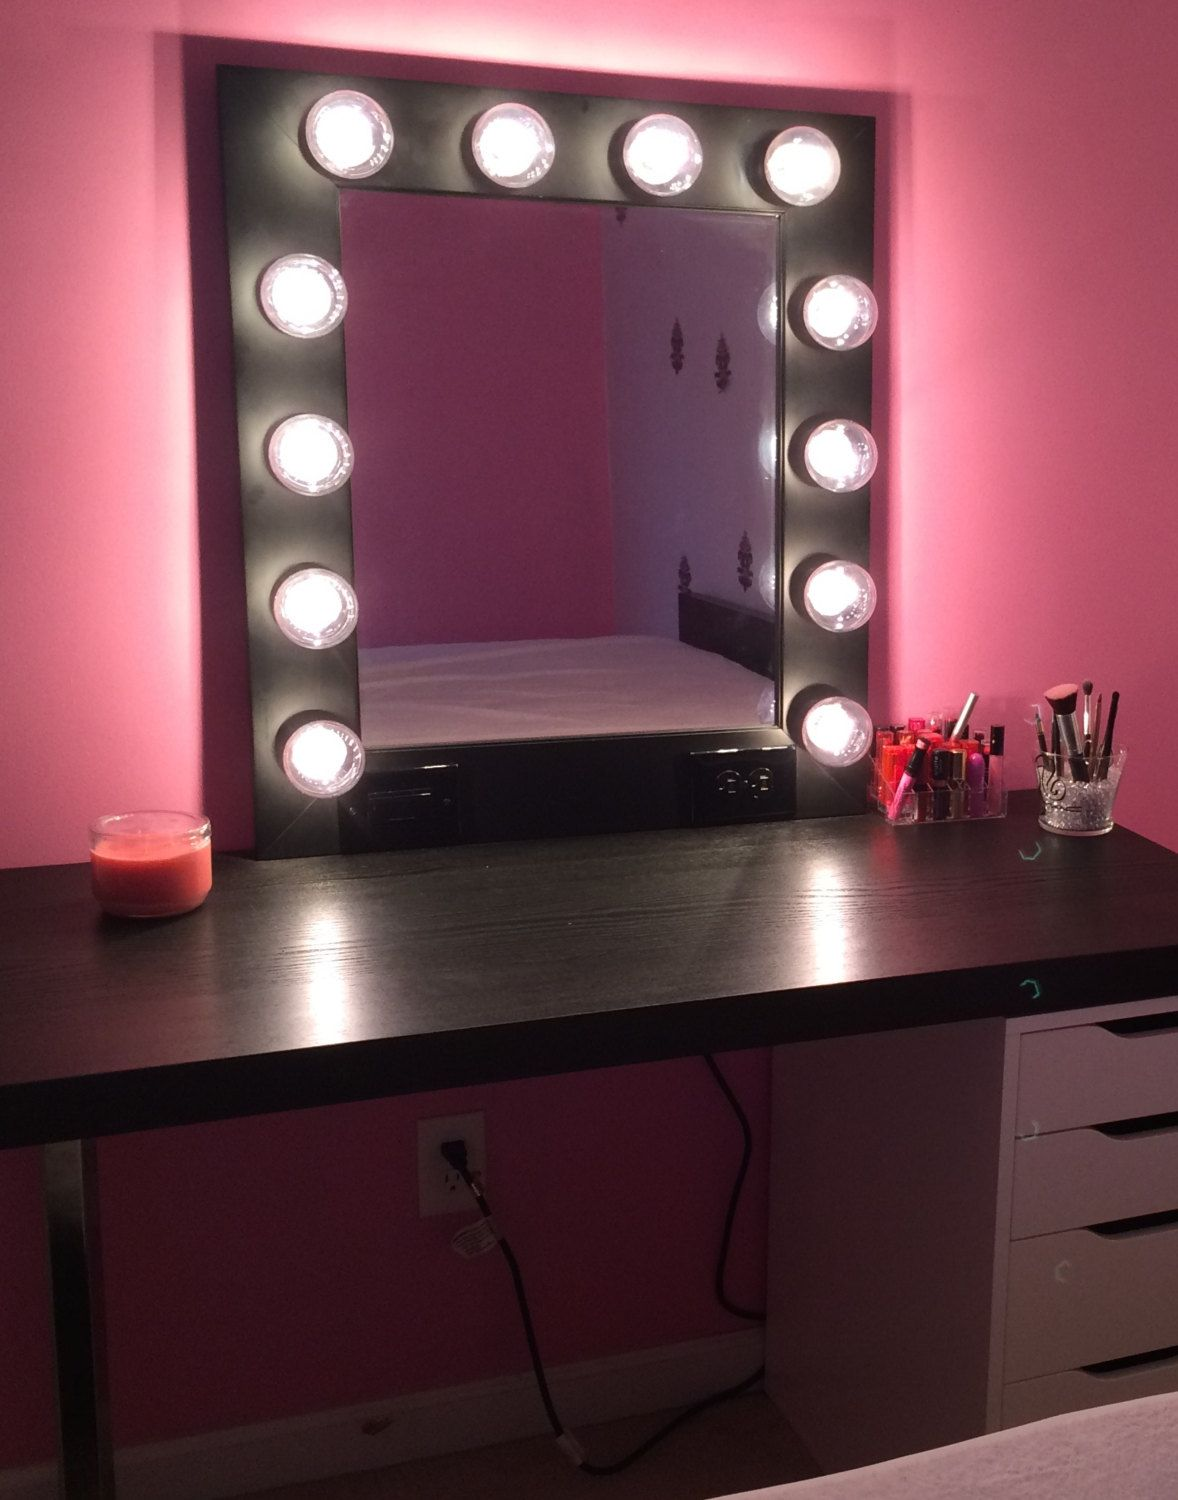 desk vanity mirror with lights. Vanity Makeup Mirror with Lights  Available Built in Digital LED Dimmer and Power Outlet Plug it watch light up by CustomVanity on Etsy Pink Girl Bedroom Painted Wall Black Wooden